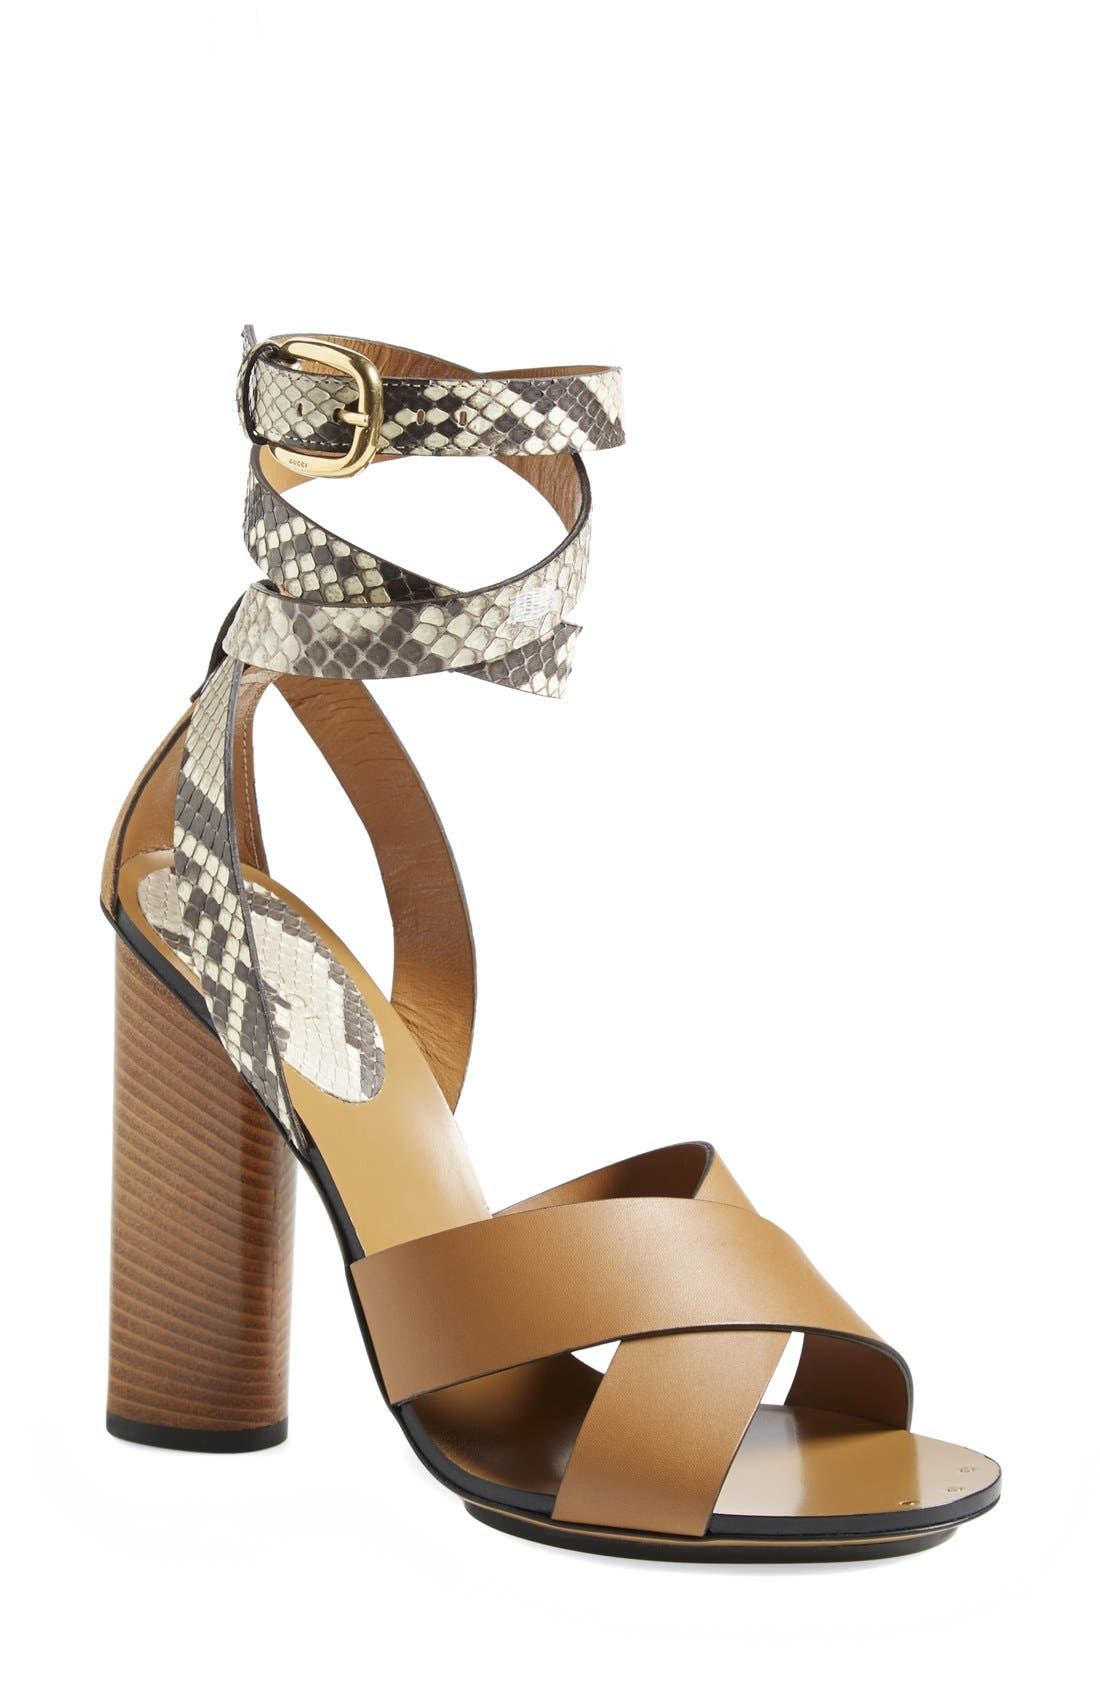 Main Image - Gucci 'Candy' Genuine Python & Leather Sandal (Women)